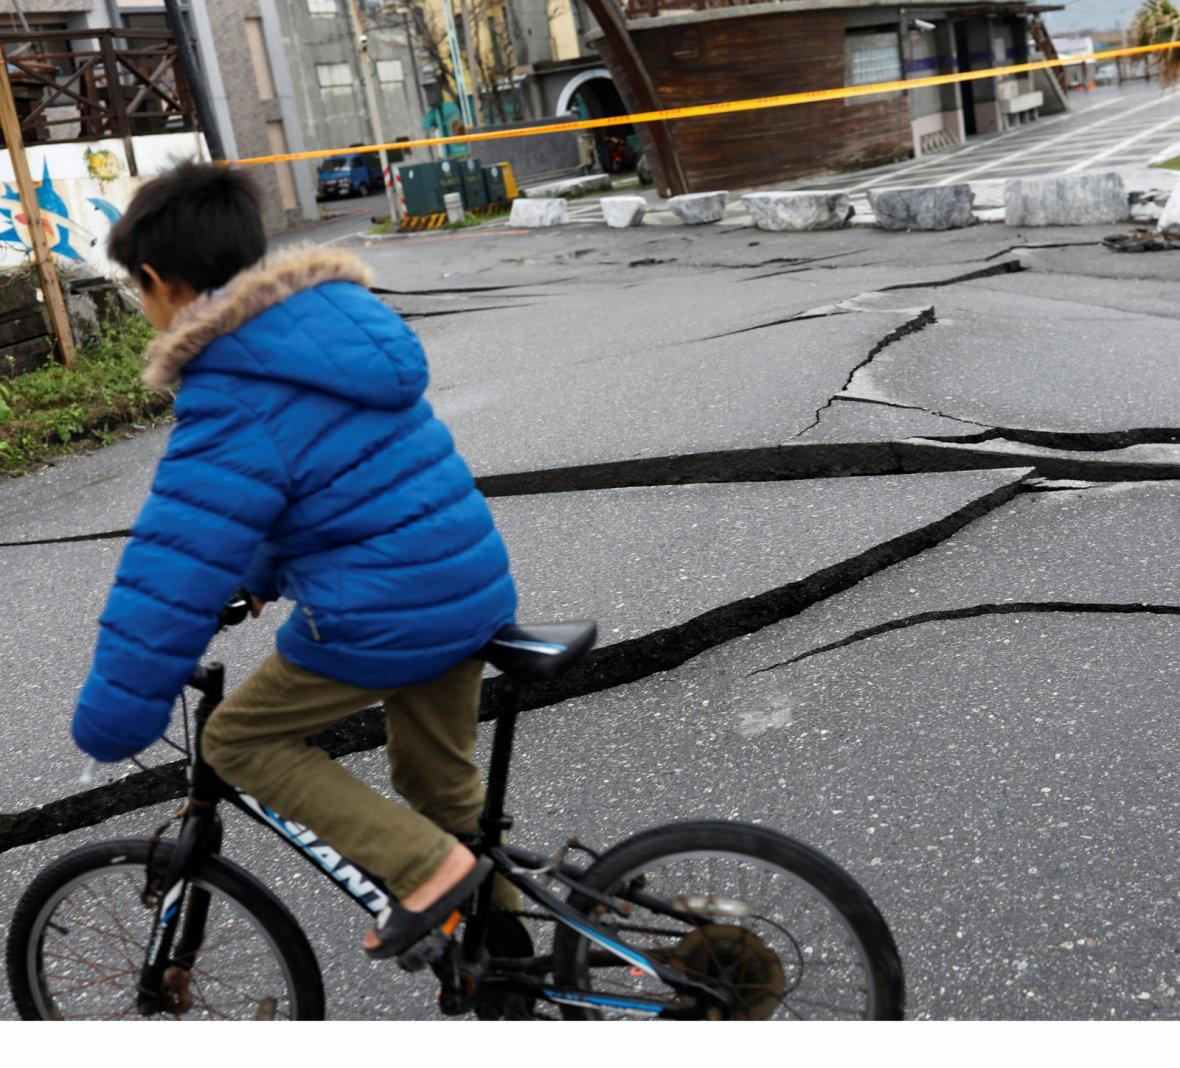 A child rides a bicycle on a fractured road after an earthquake hit Hualien